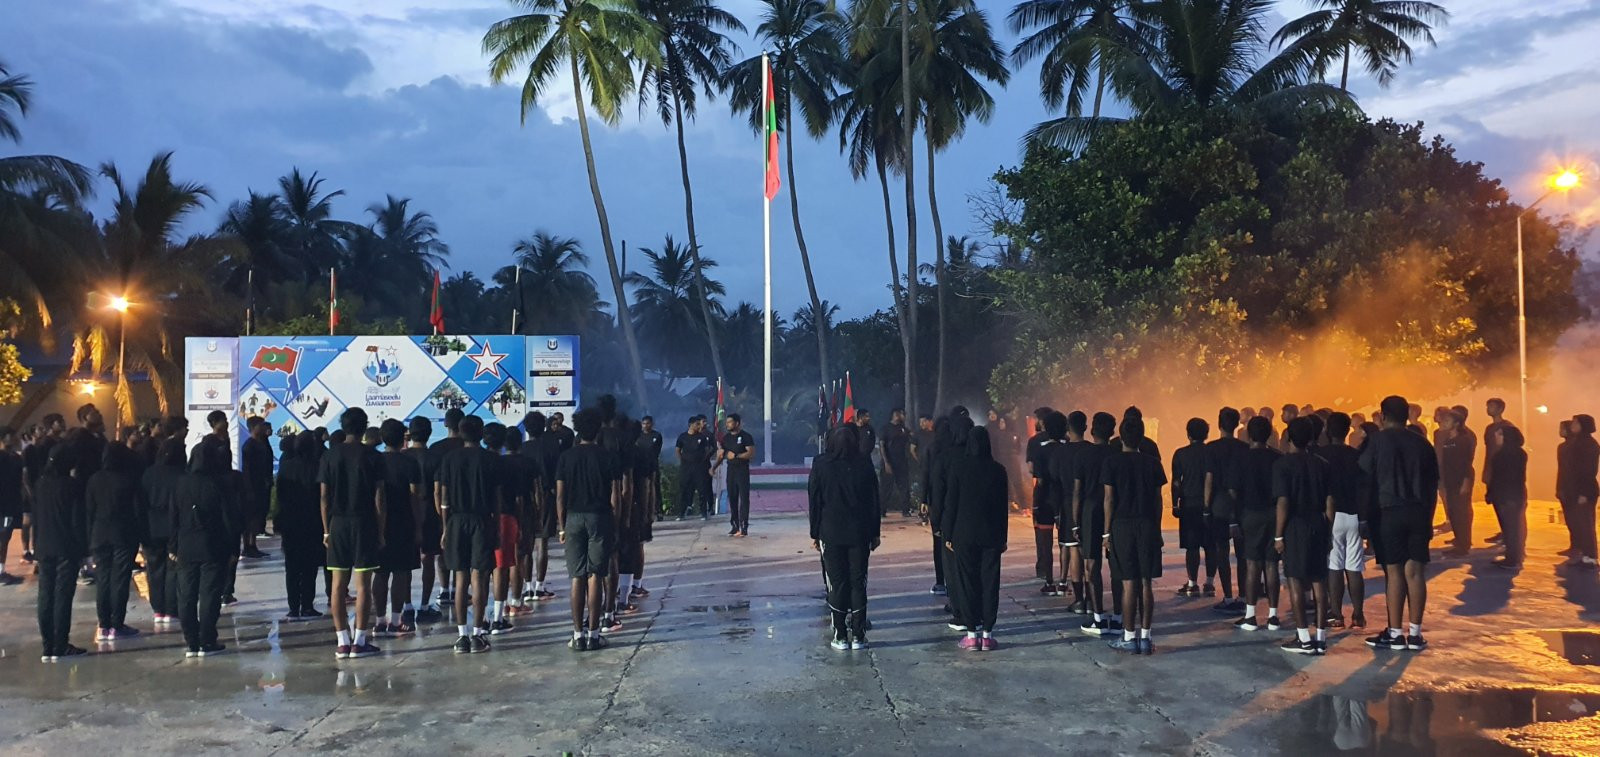 'An Exemplary Youth' Program in Maldives